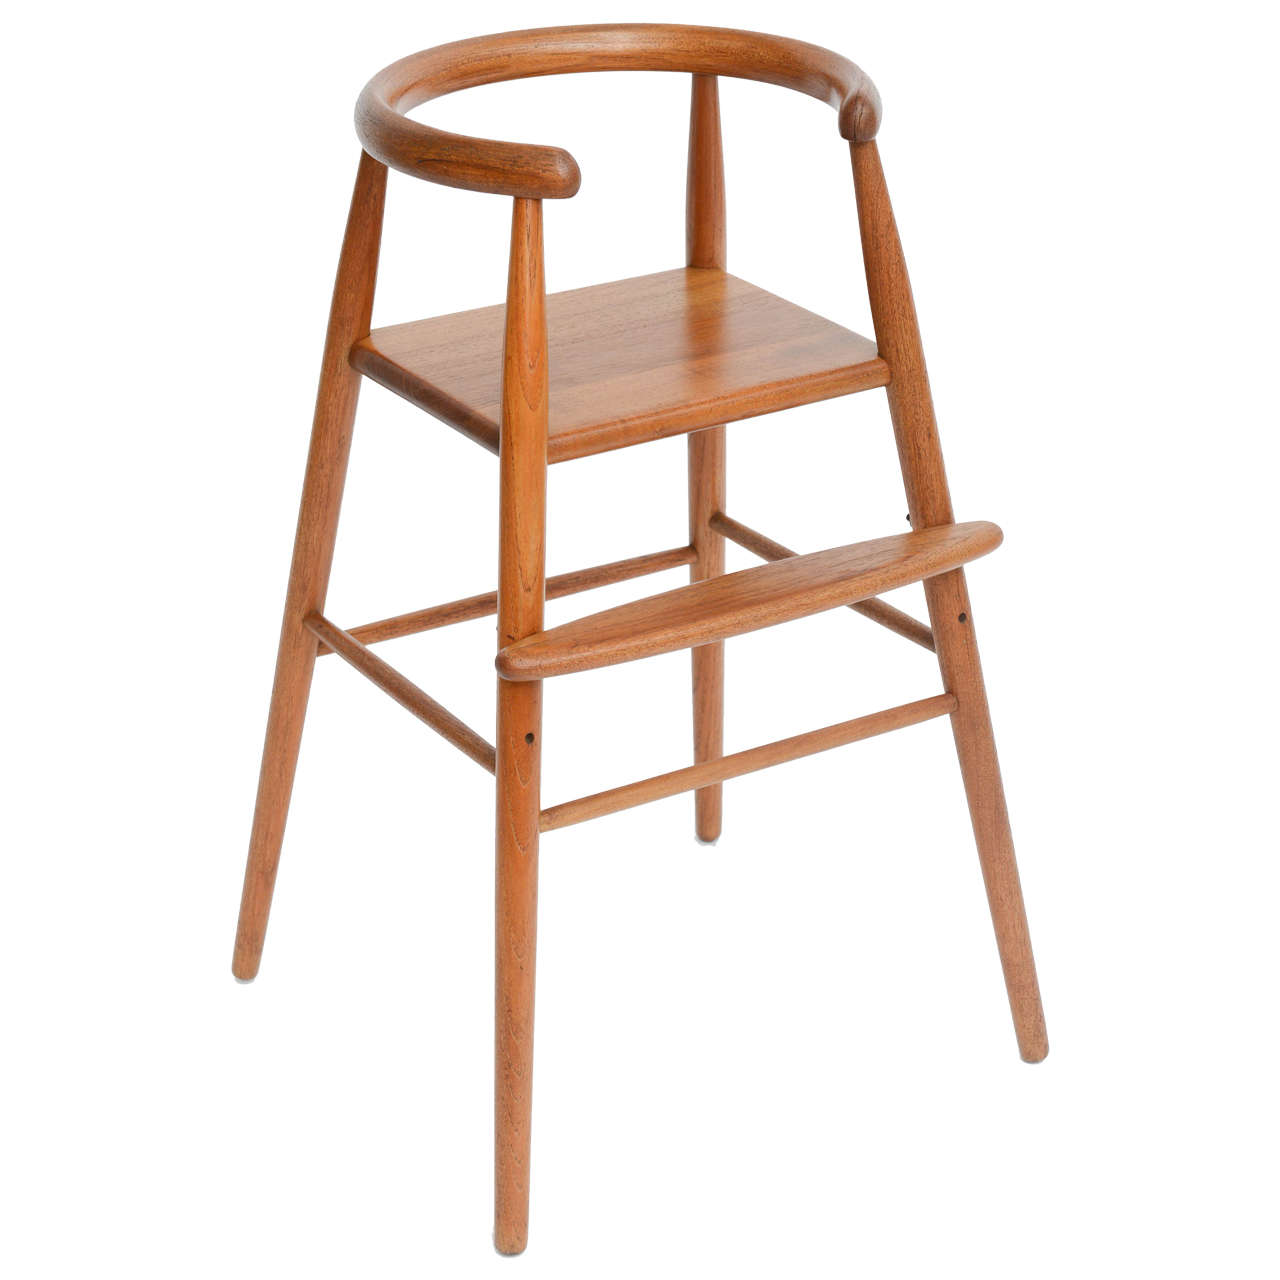 Teak Child 39 S Modern High Chair Nanna Ditzel For Kolds